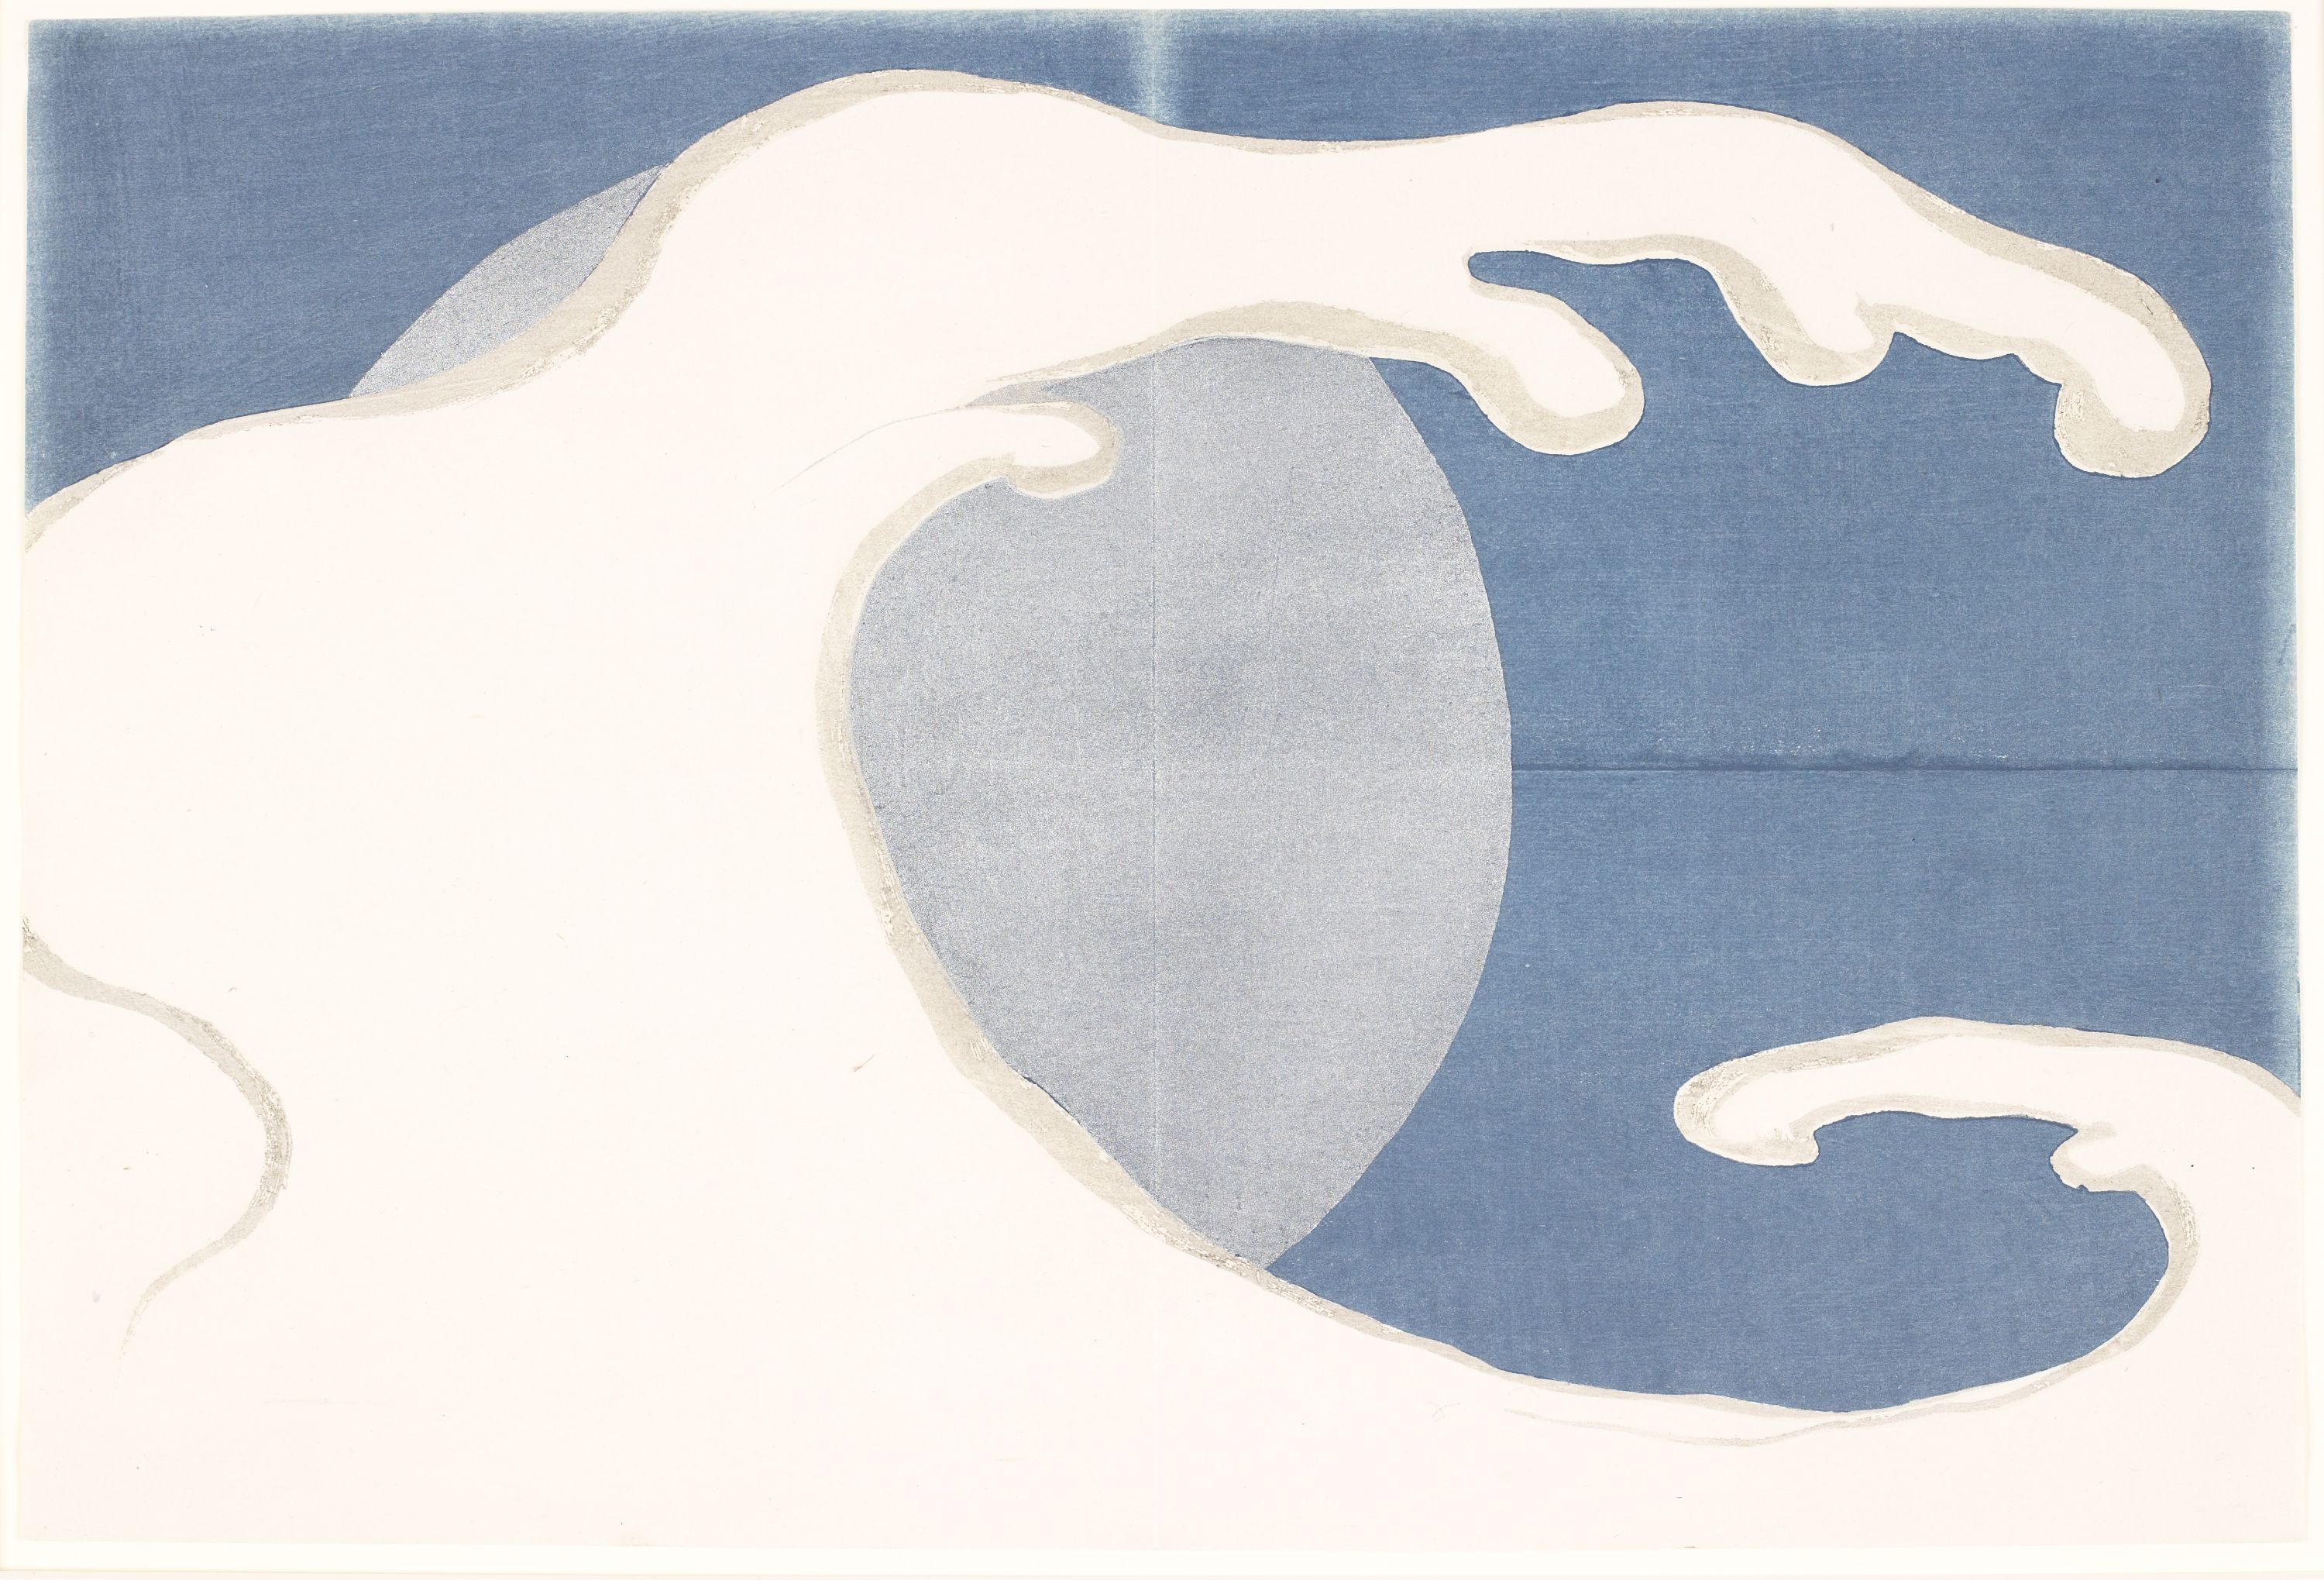 """Tatsunami (A Cresting Wave"" Kamisaka Sekka, Japan (1866-1942). Woodblock print, ink and color on paper. Collection of the Art Fund Inc. at the BMA, AFI238.2010.9."